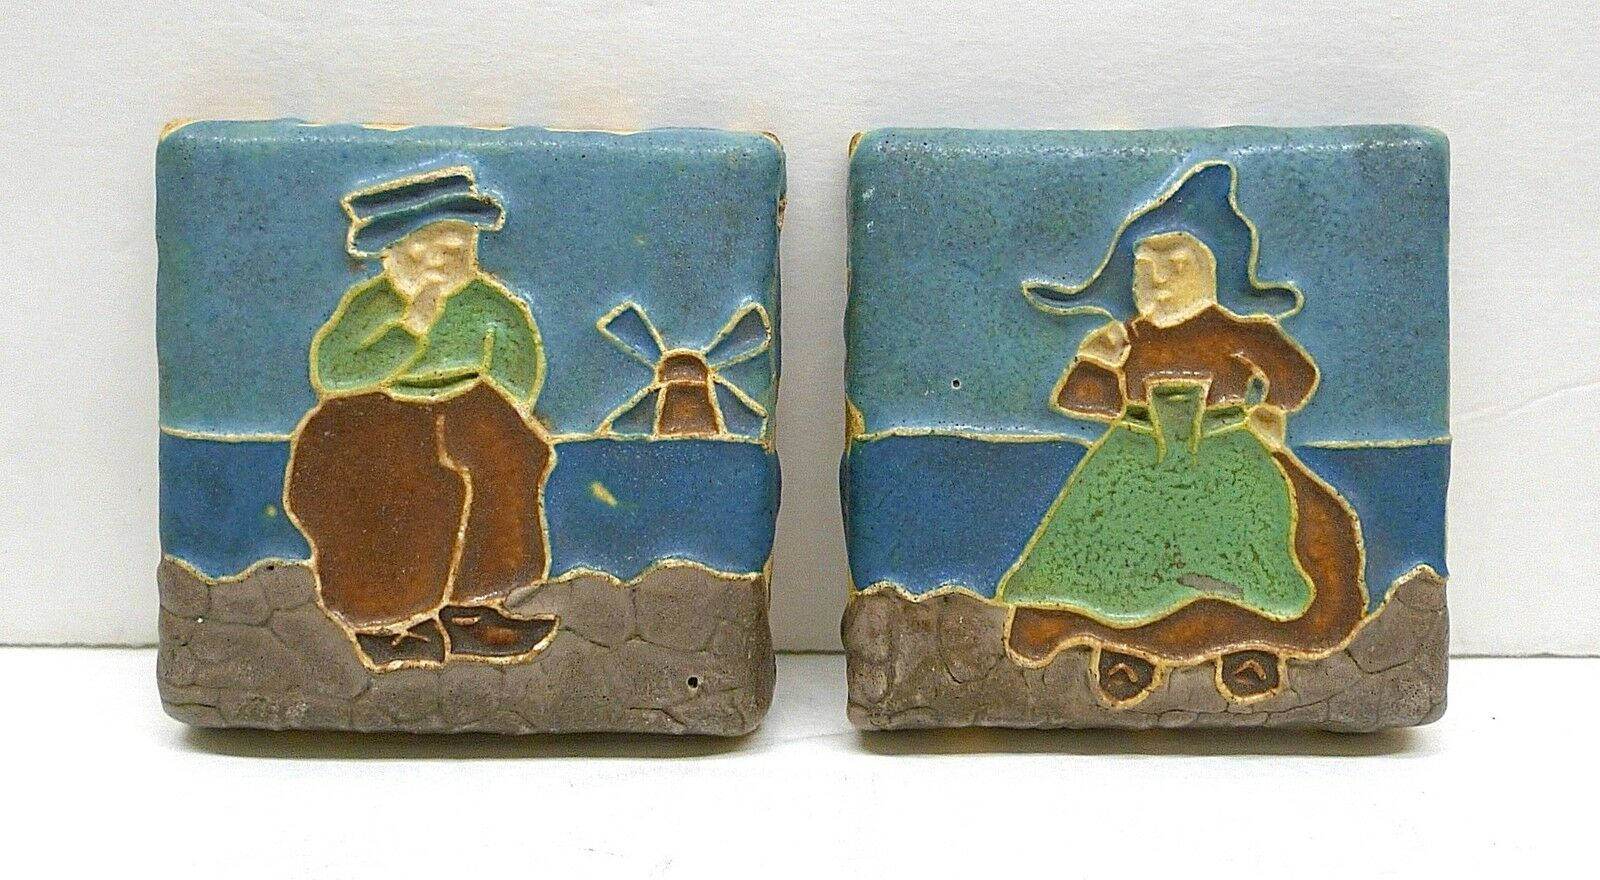 VINTAGE CALCO TILES - Dutch Girl & Dutch Boy - $500.00 | PicClick